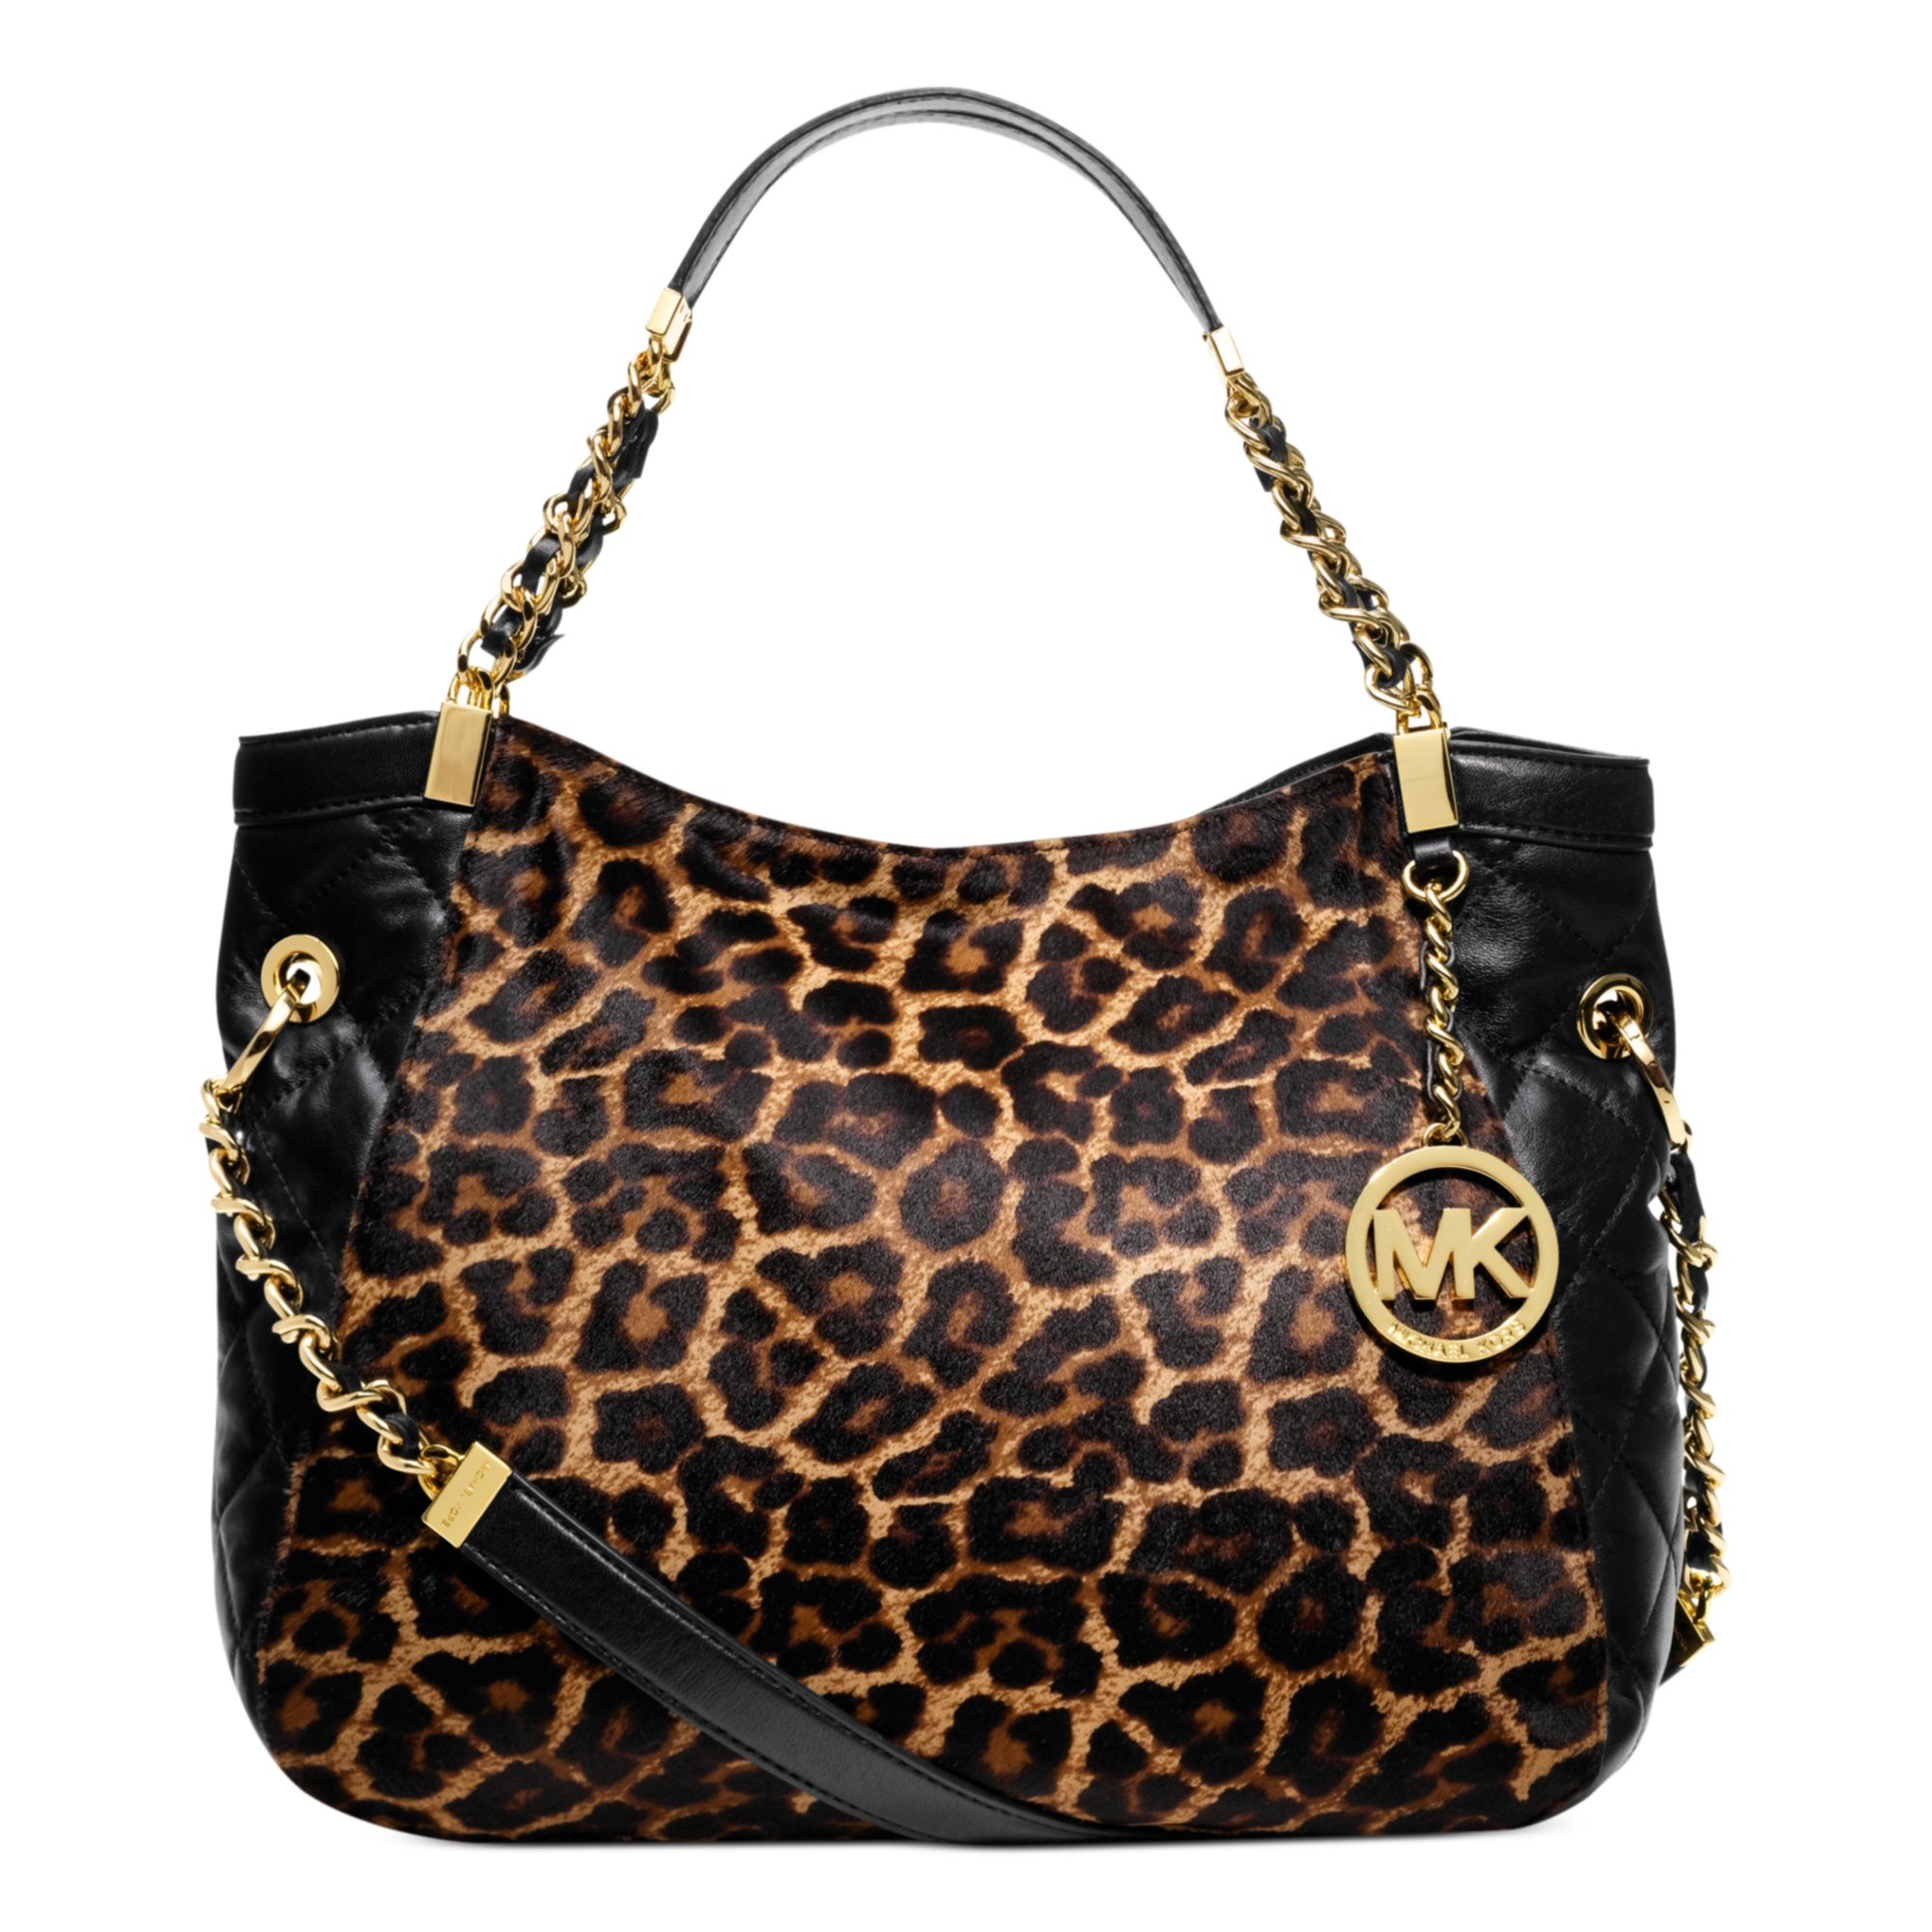 71849a5a67bf Gallery. Previously sold at: Macy's · Women's Michael By Michael Kors  Susannah ...